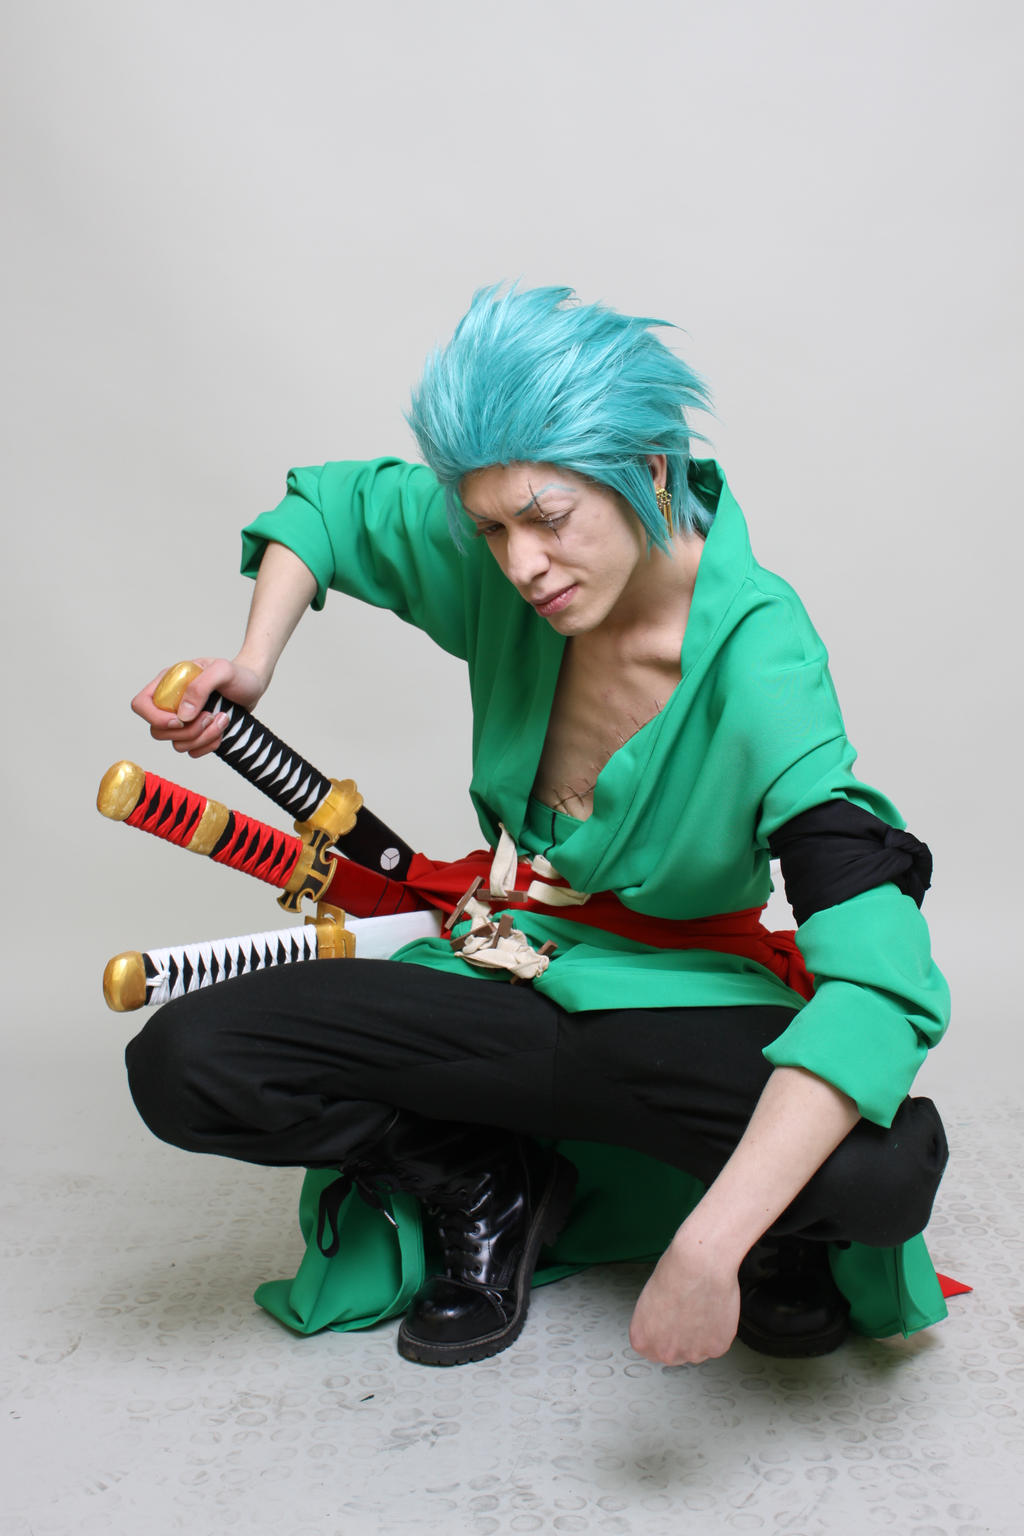 5 by sato92 Zoro 2 years after Zoro After 2 Years